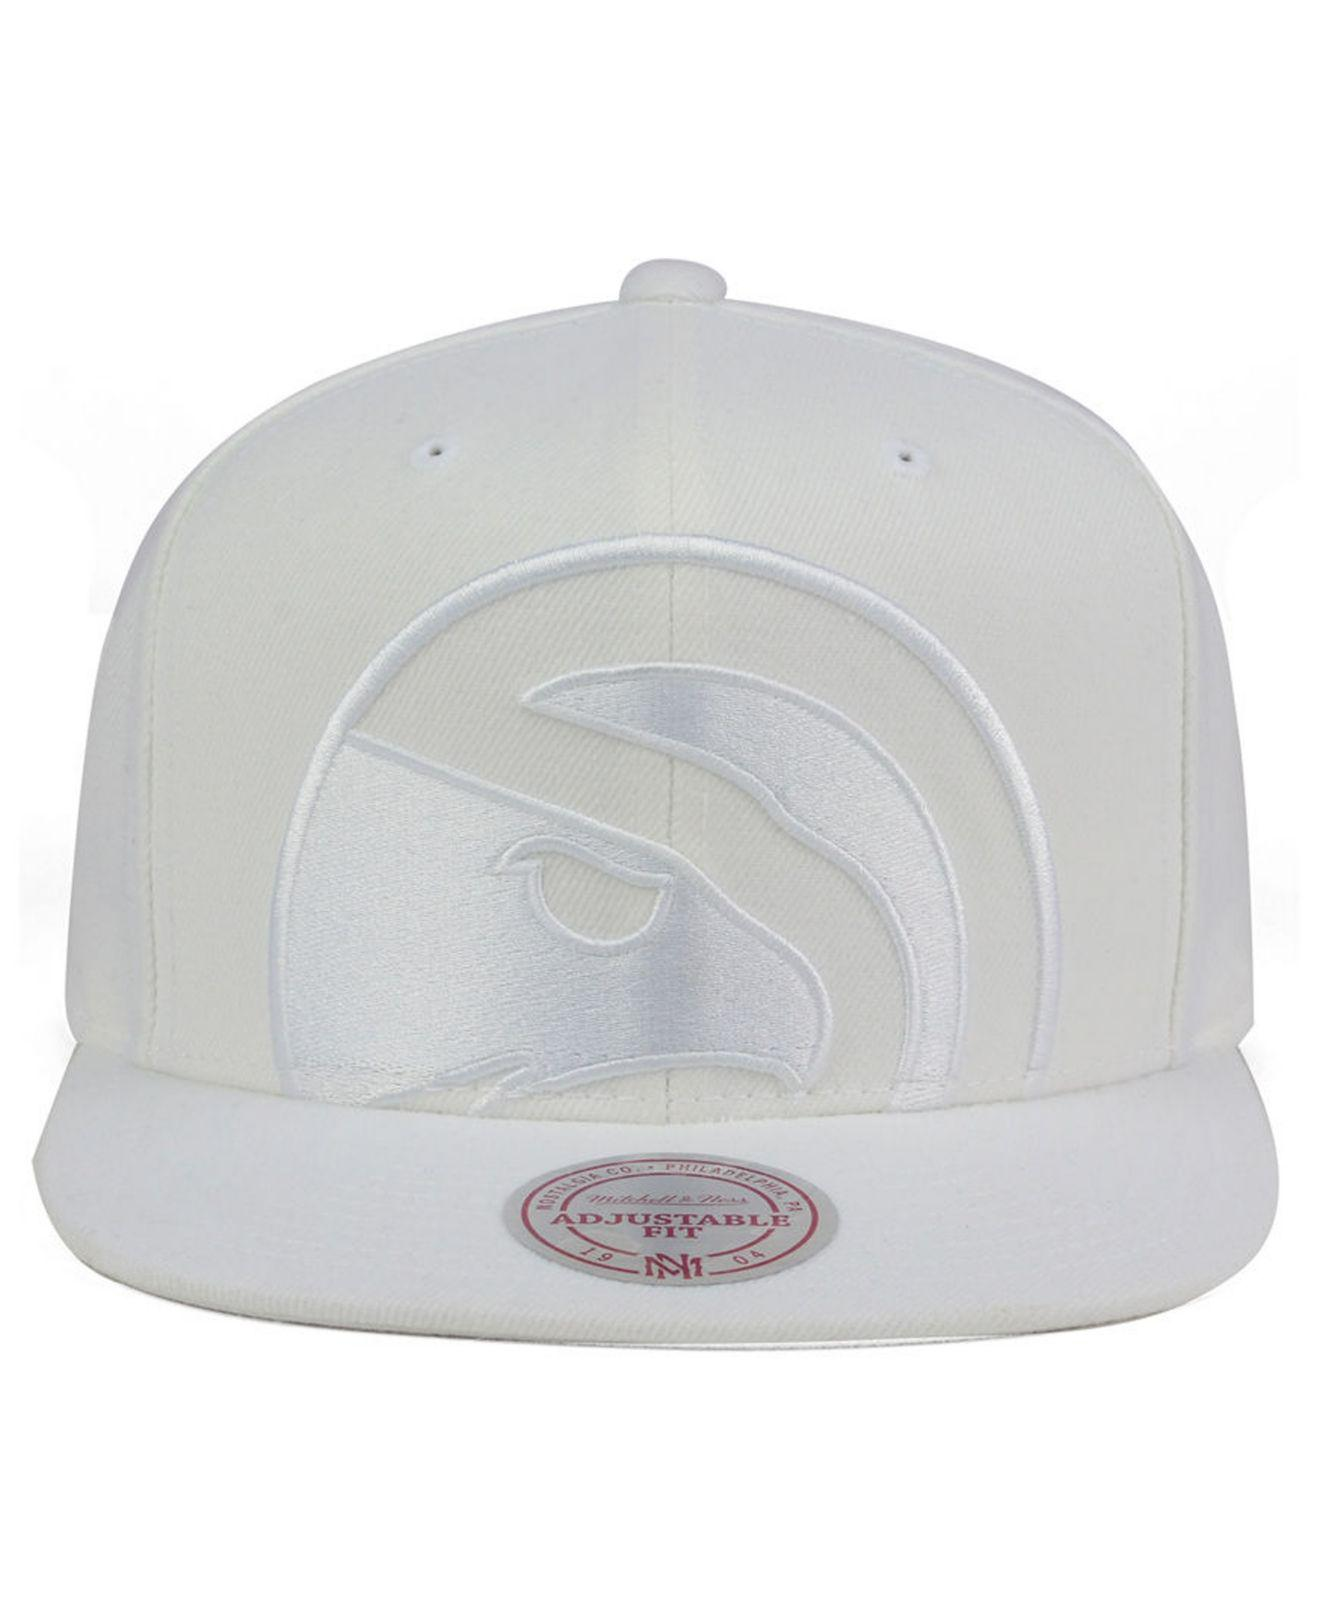 low priced d7578 19c32 Lyst - Mitchell   Ness Atlanta Hawks Cropped Xl Logo Snapback Cap in White  for Men